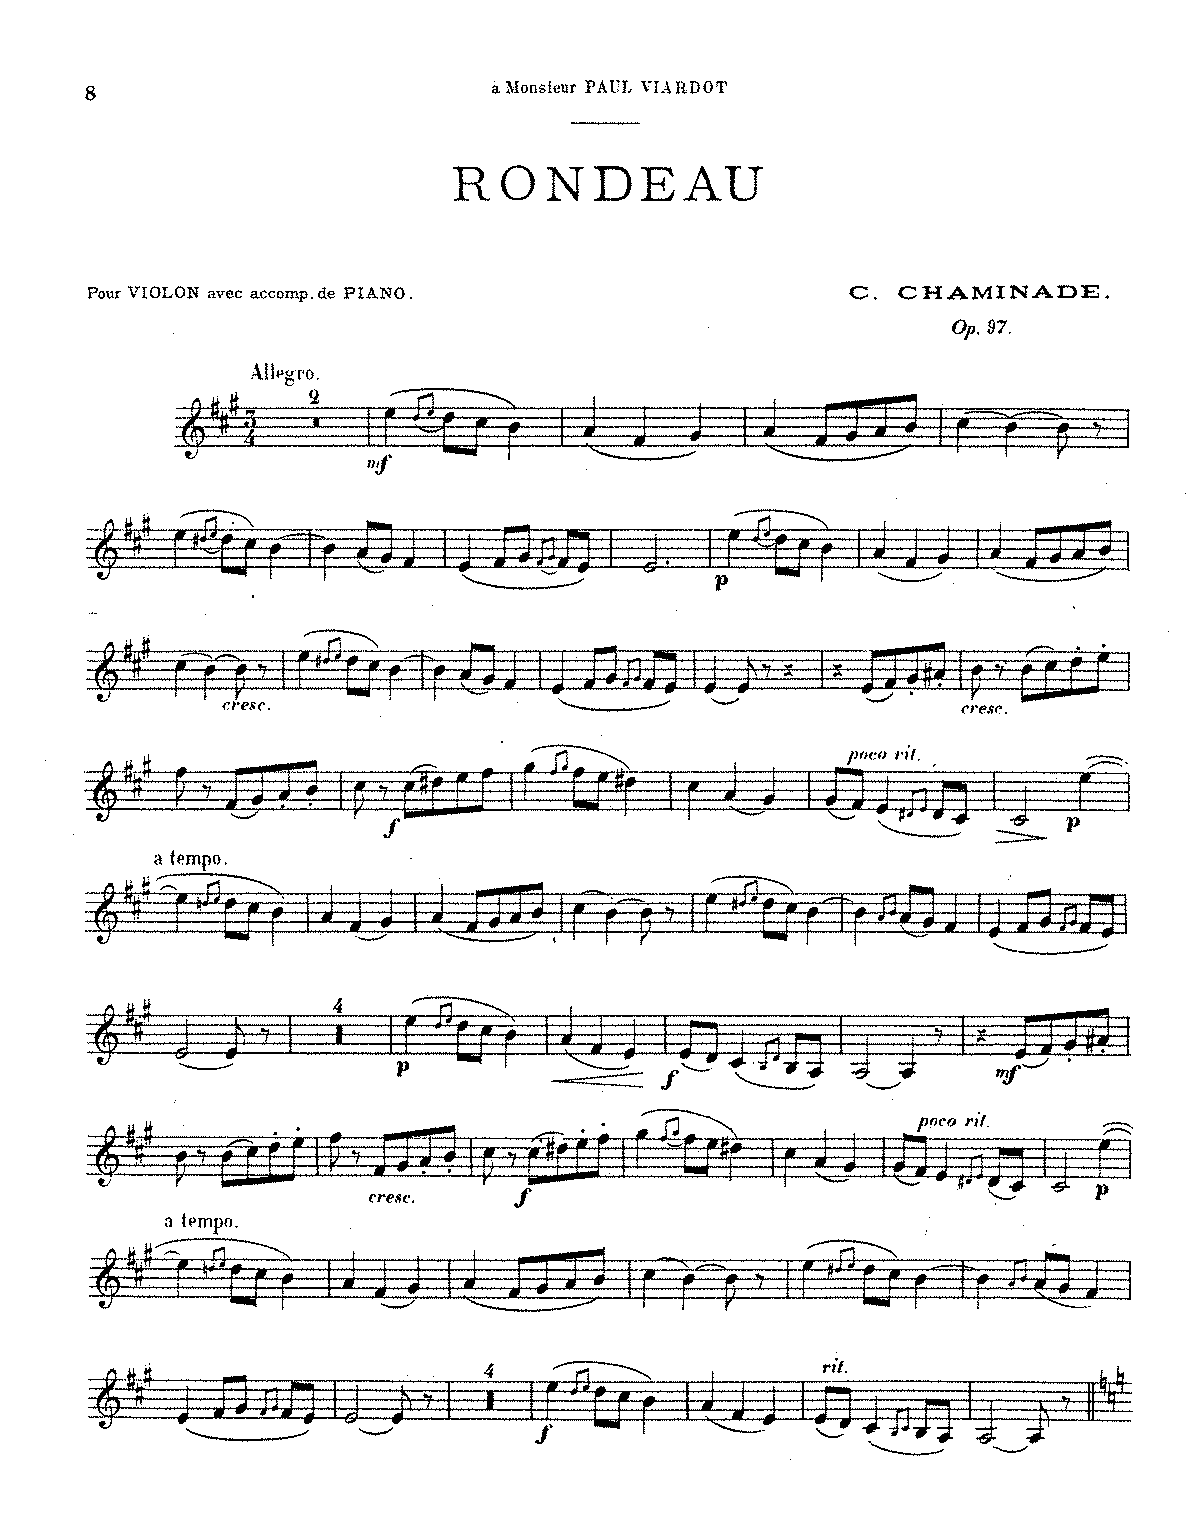 PMLP119878-Chaminade - Rondeau, Op. 97 (violin and piano).pdf